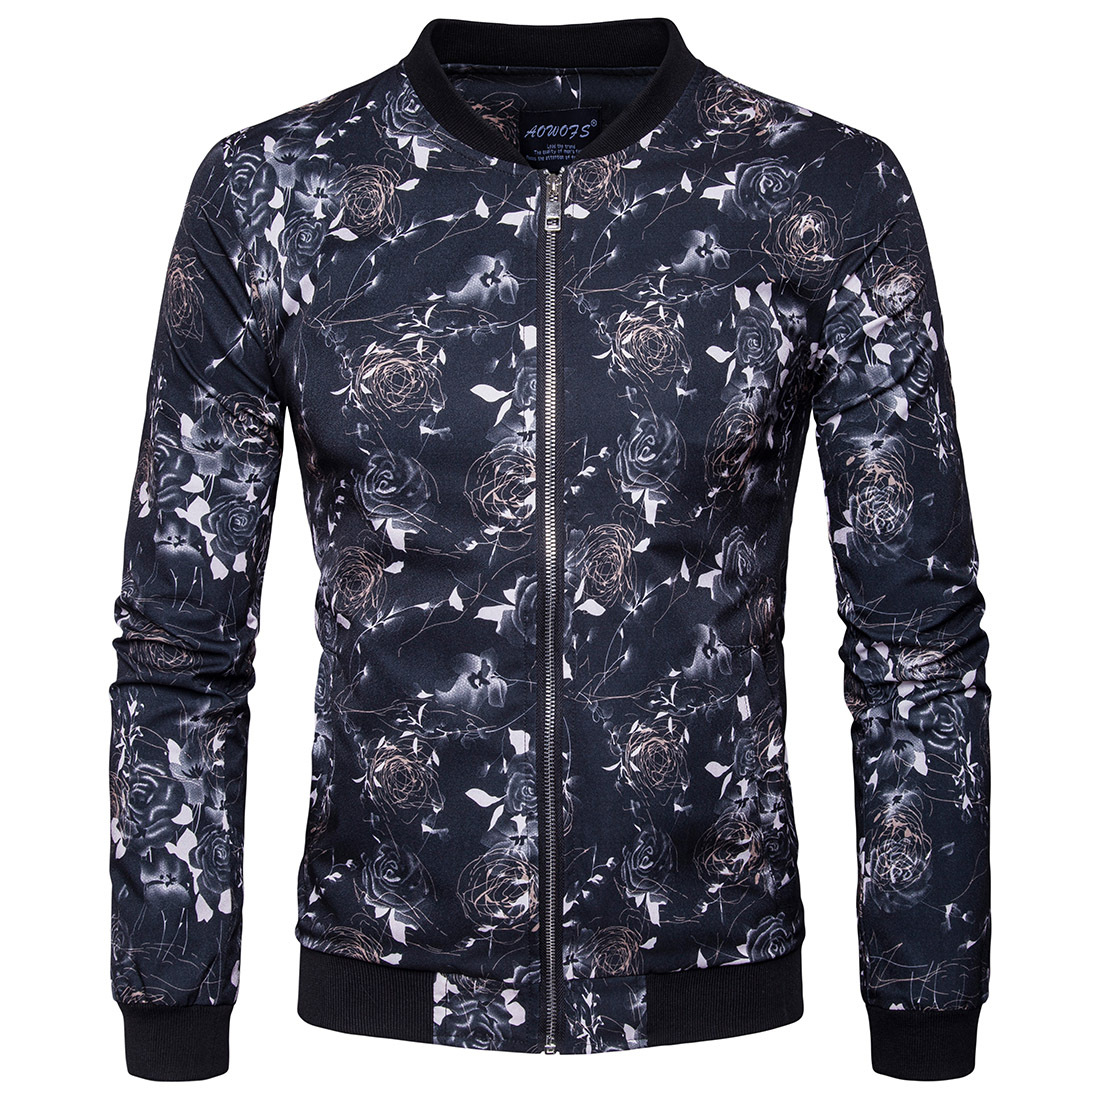 2017 new arrival hot sale mens jackets mandarin collar Camouflage color casual man jacket coat slim fit fashion yung men coat